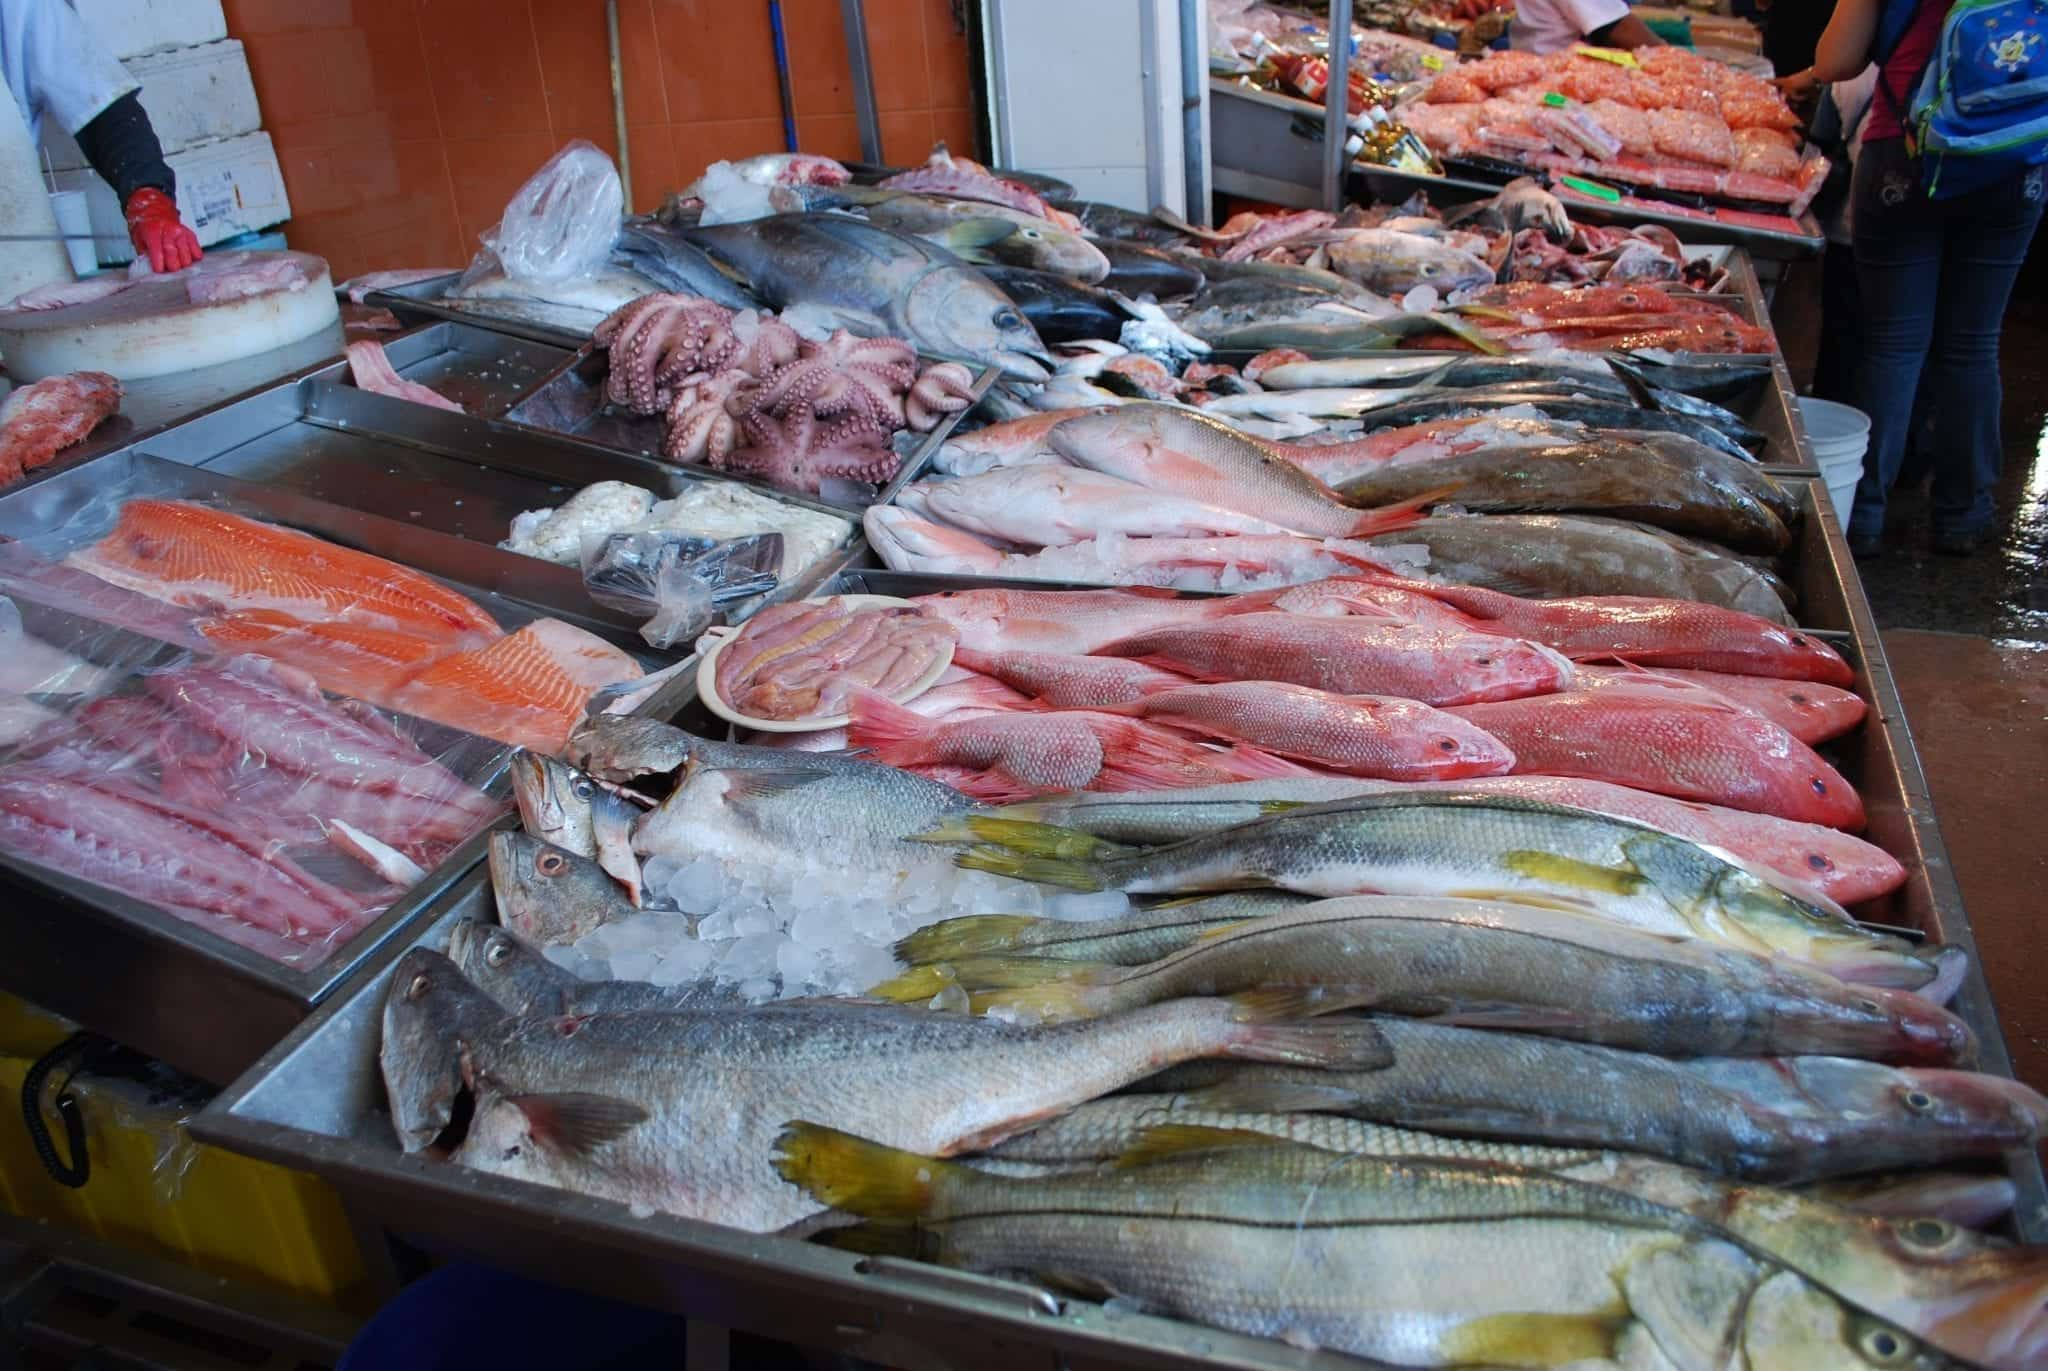 Fish for sale at La Nueva Viga Market in Mexico City; By AlejandroLinaresGarcia (Own work), CC BY-SA 4.0, via Wikimedia Commons, no changes.